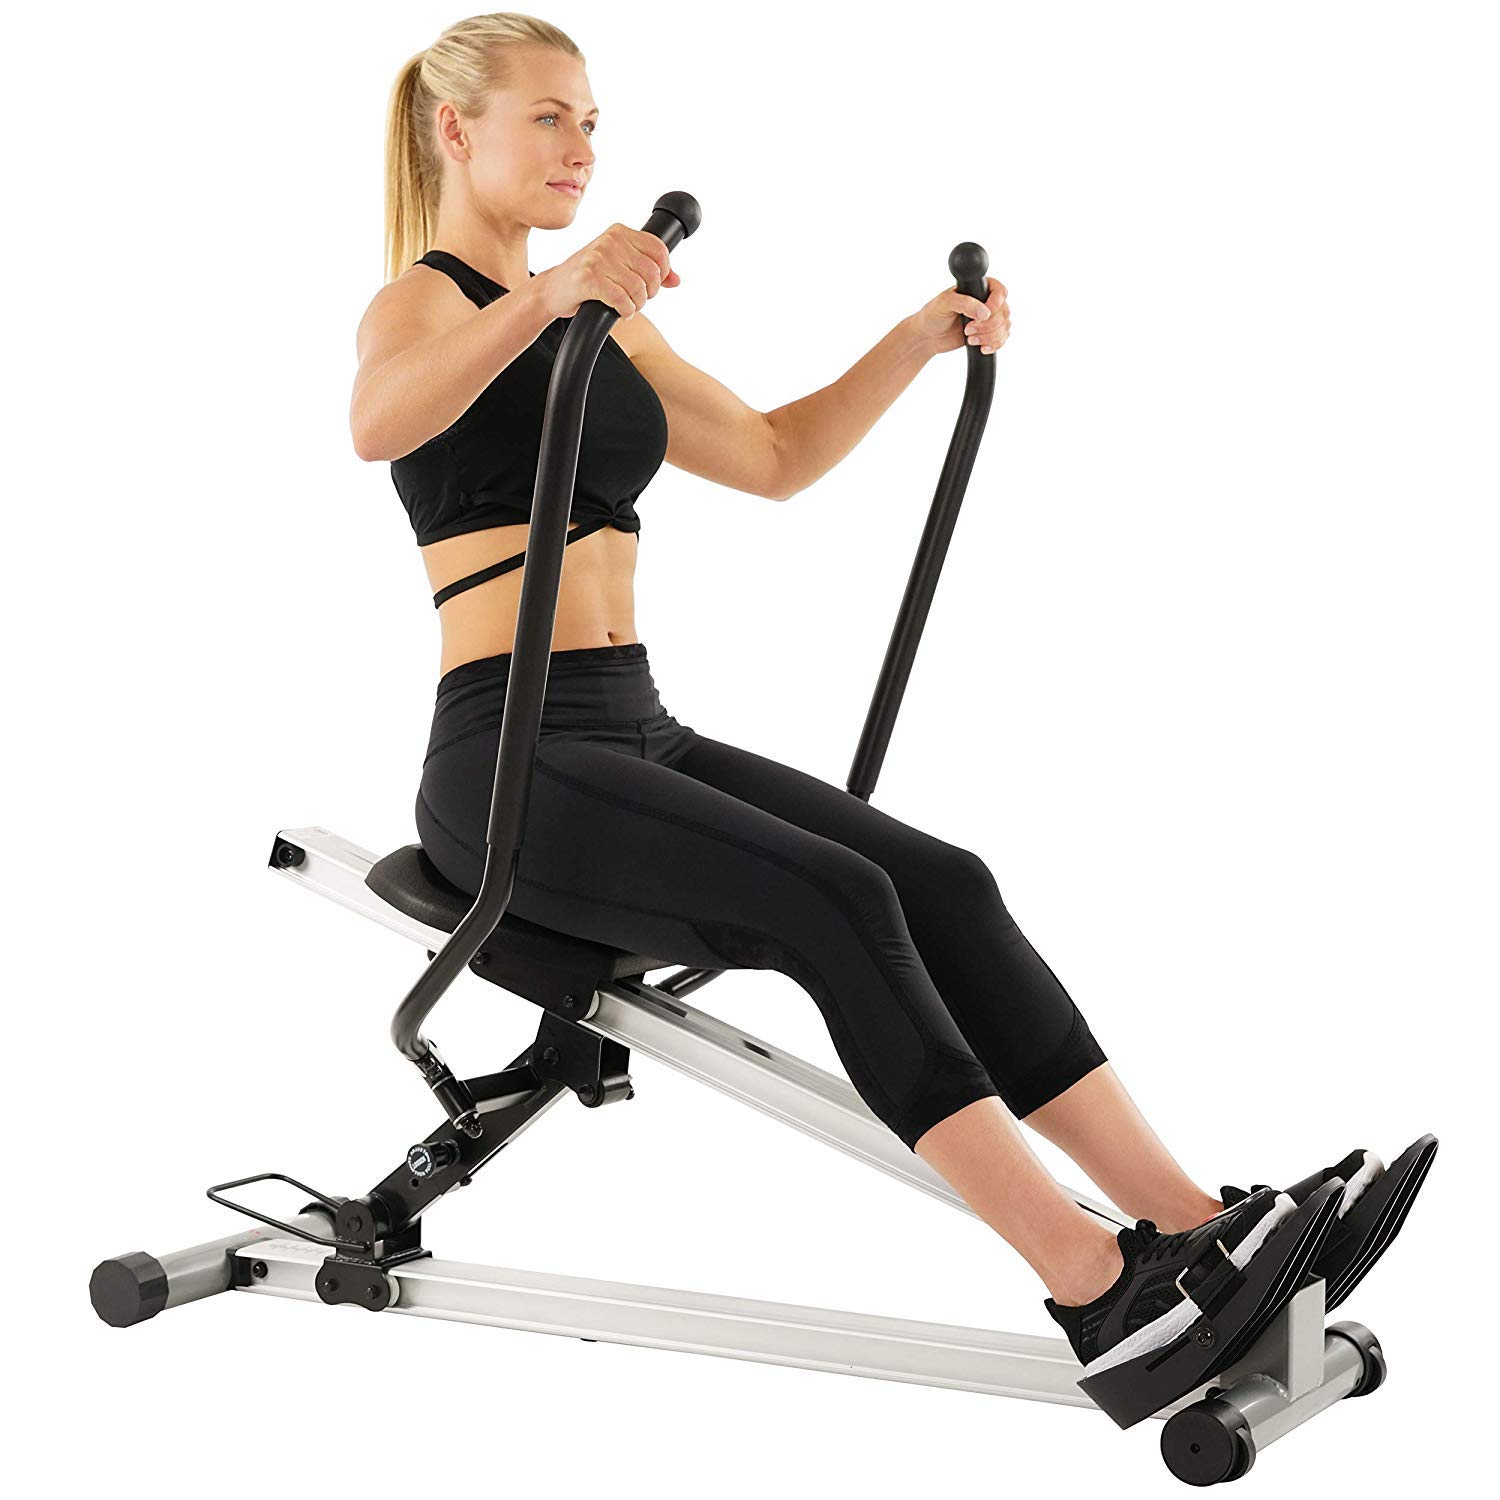 Sunny Health & Fitness Incline Full Motion Rowing Machine Rower with 350 lb Weight Capacity and LCD Monitor by Sunny Health & Fitness (Image #1)